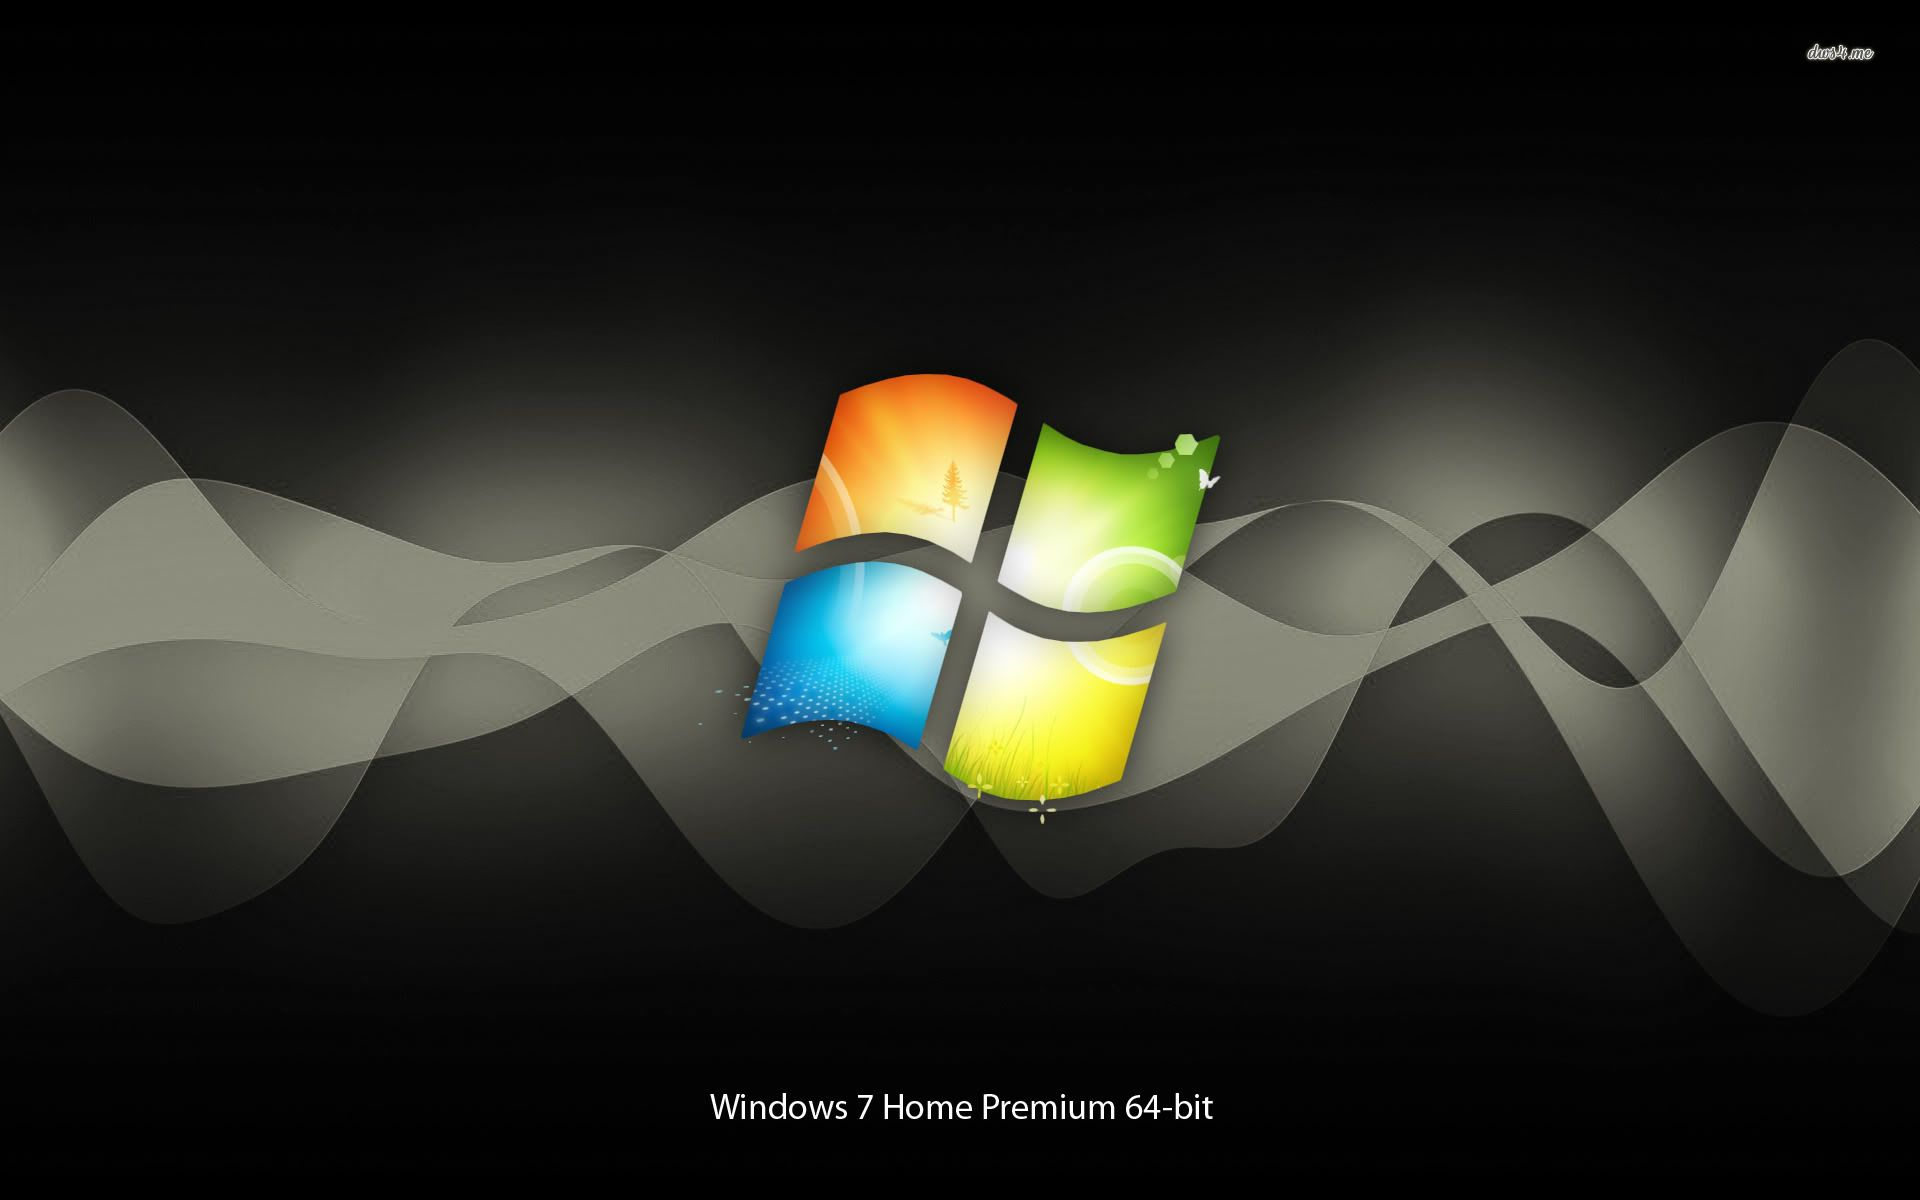 windows 7 home premium wallpaper - sf wallpaper